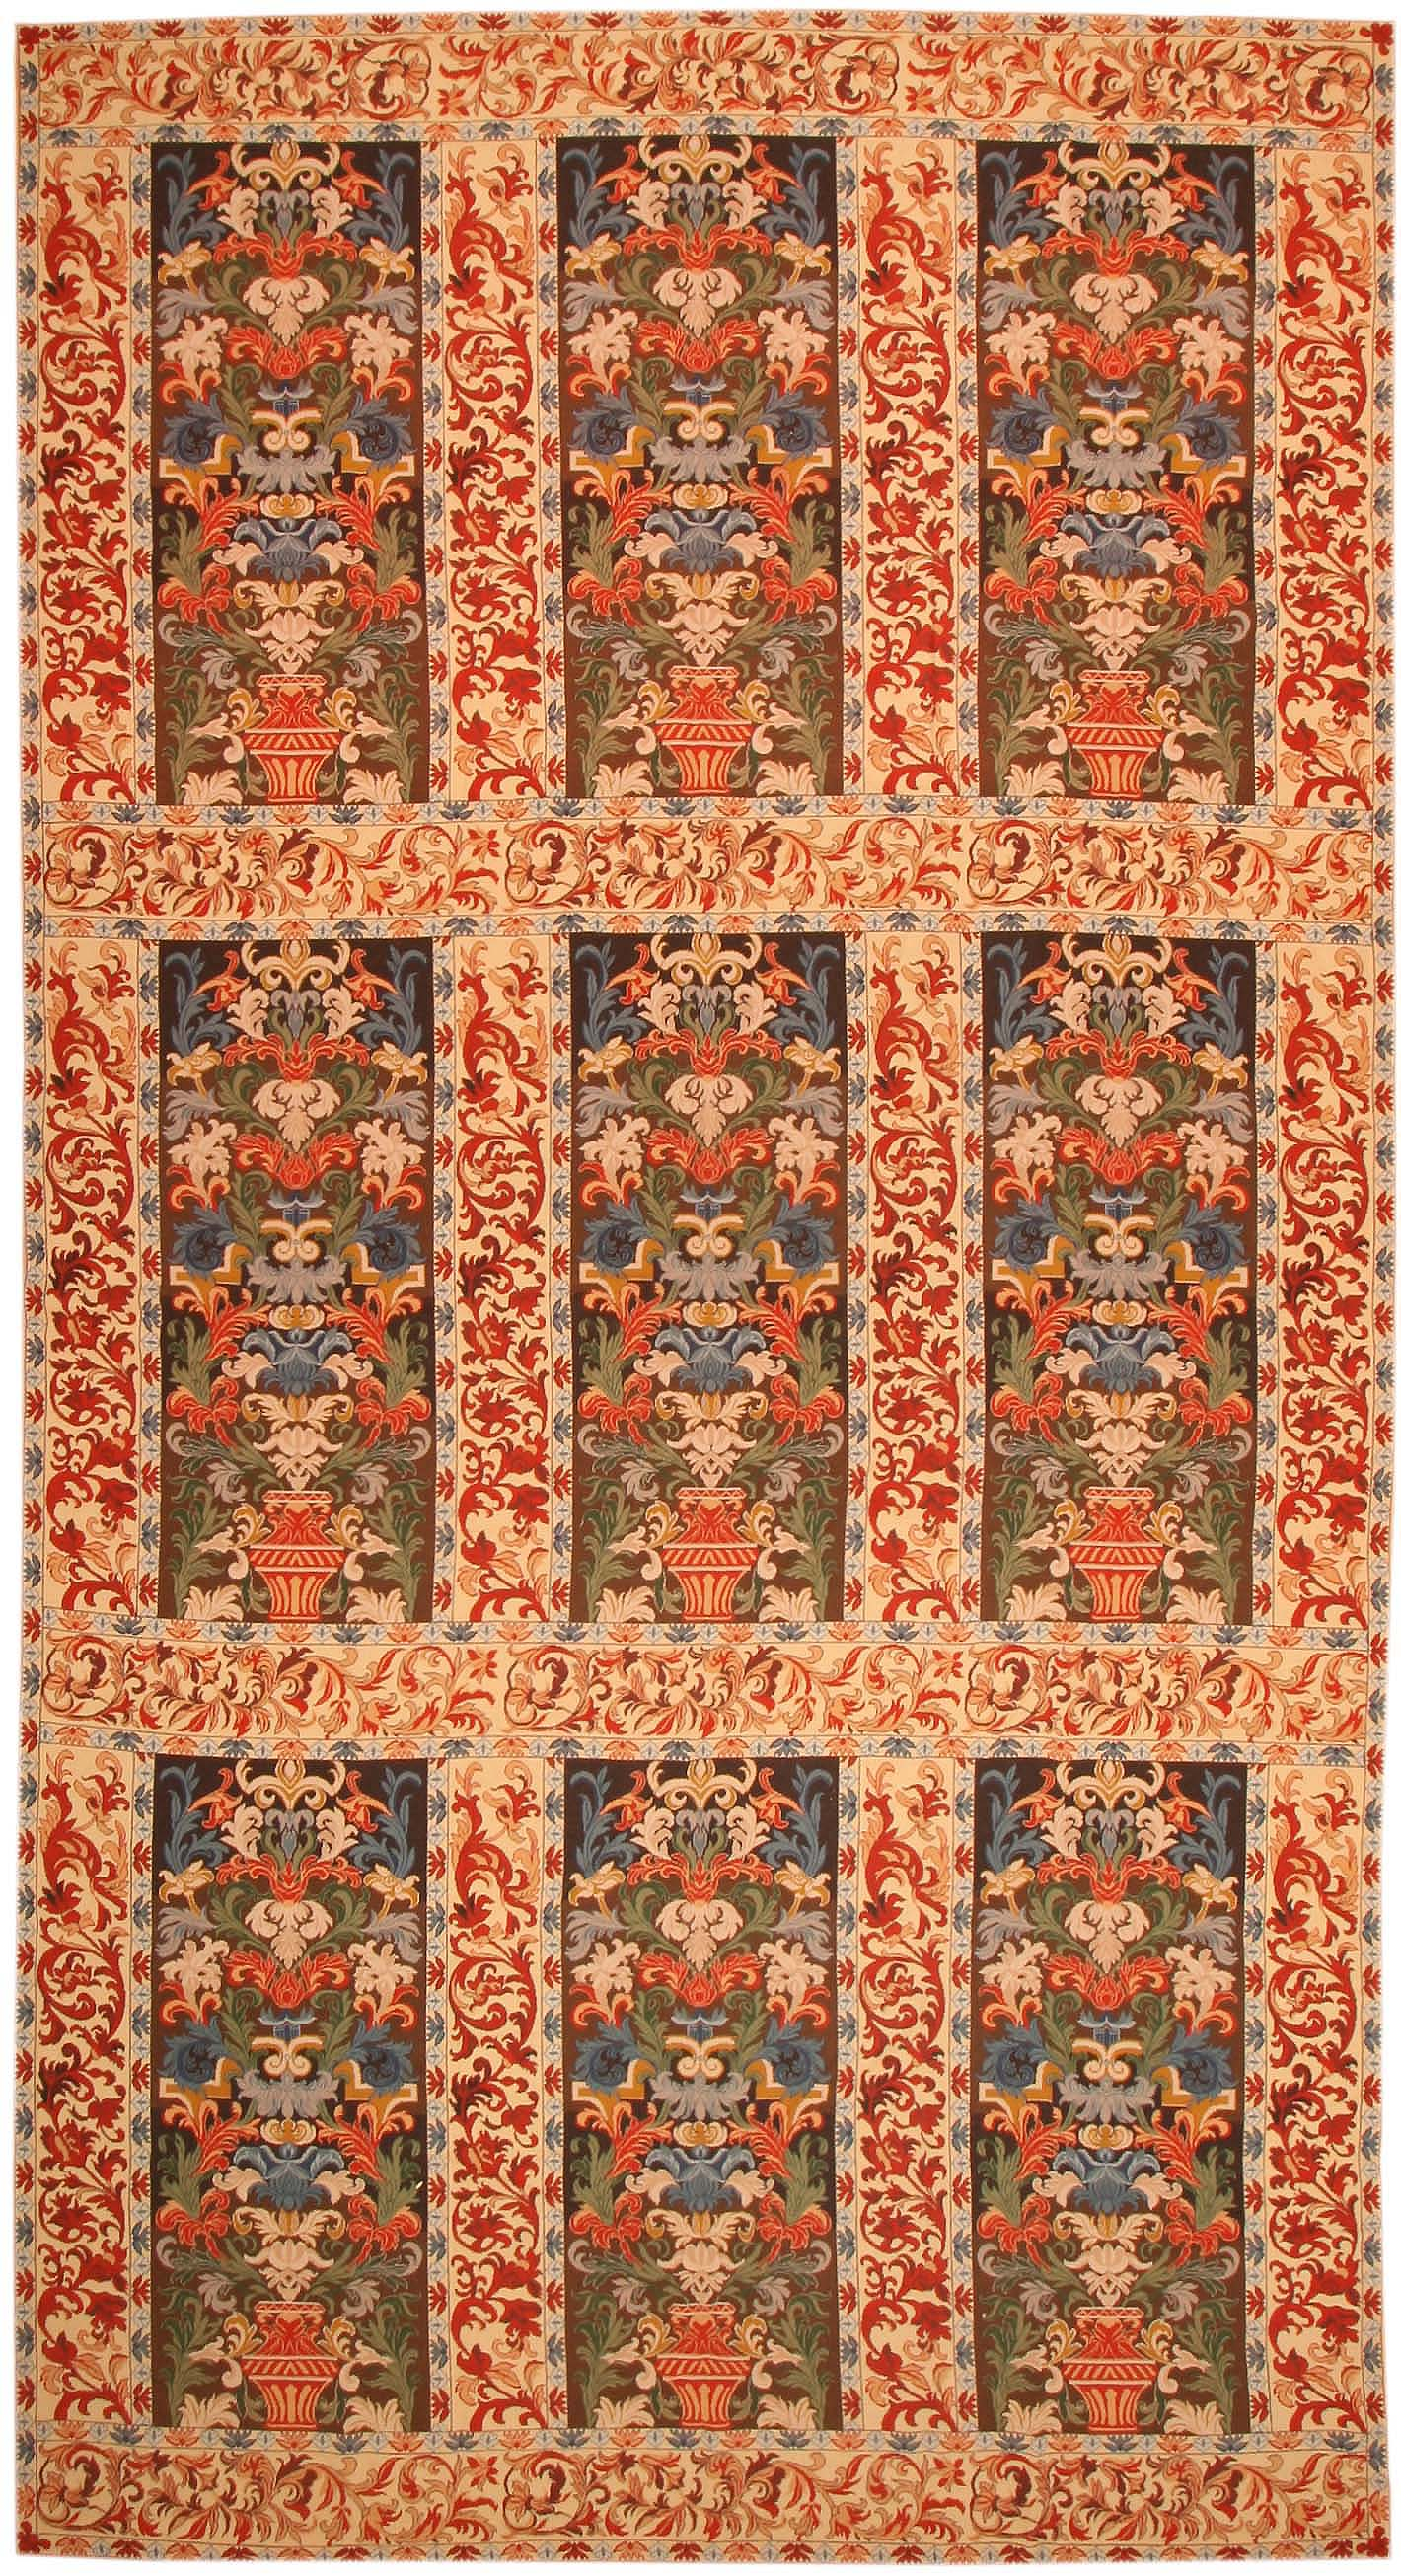 French Oriental Rugs : Antique needlepoint french oriental rug for sale